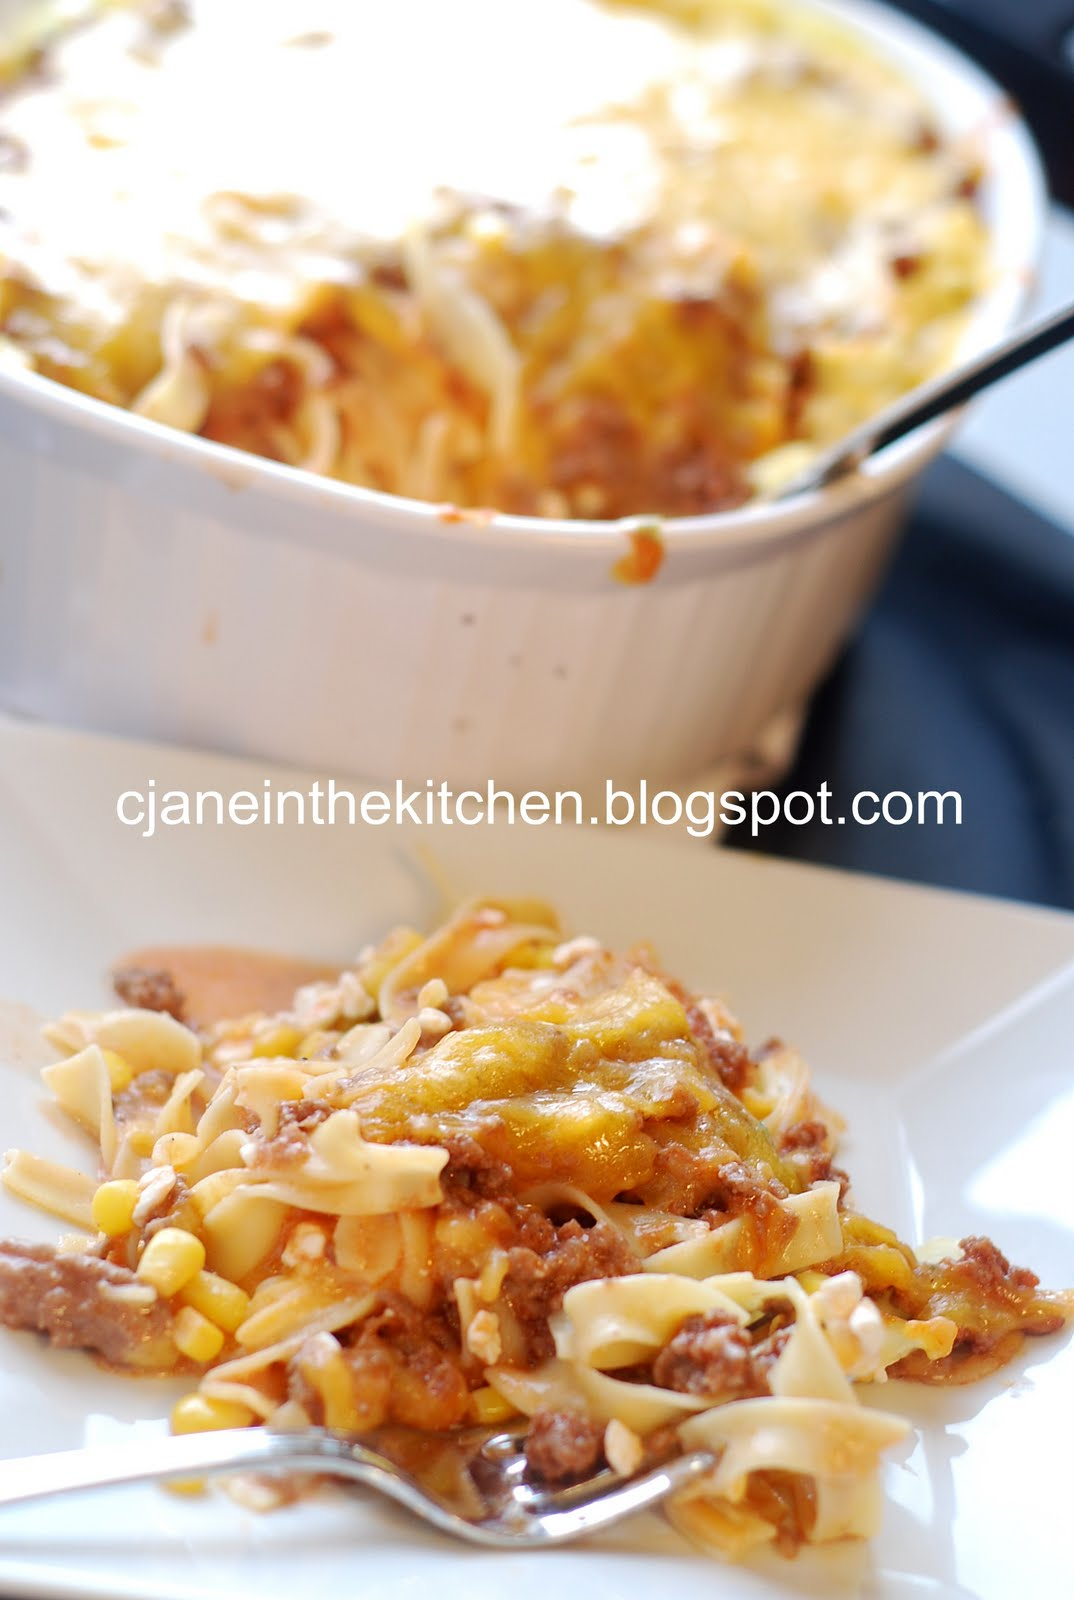 See Jane in the kitchen: Sour Cream Noodle Bake